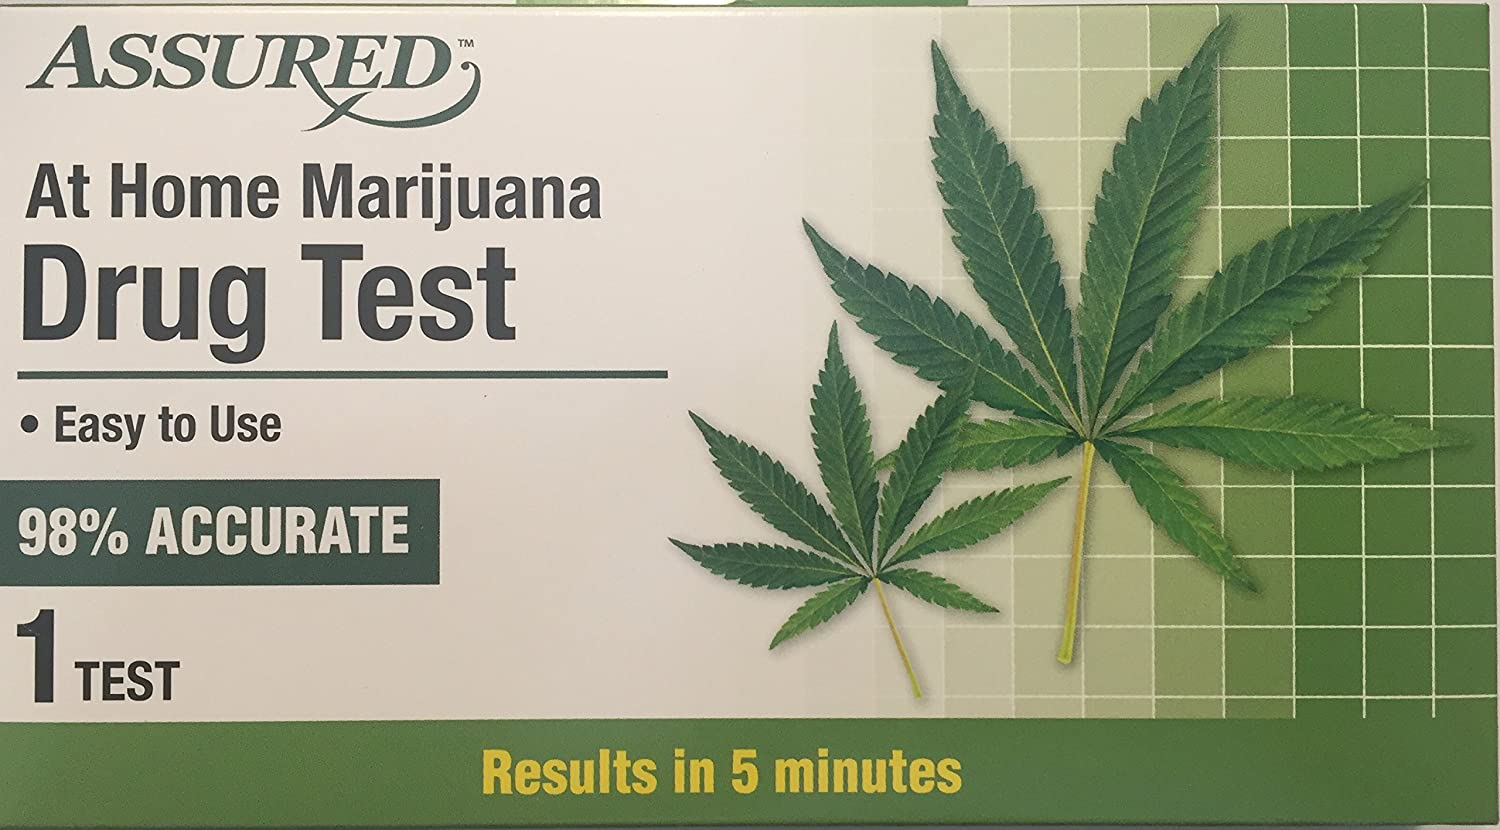 Assured at Home Marijuana Drug Test